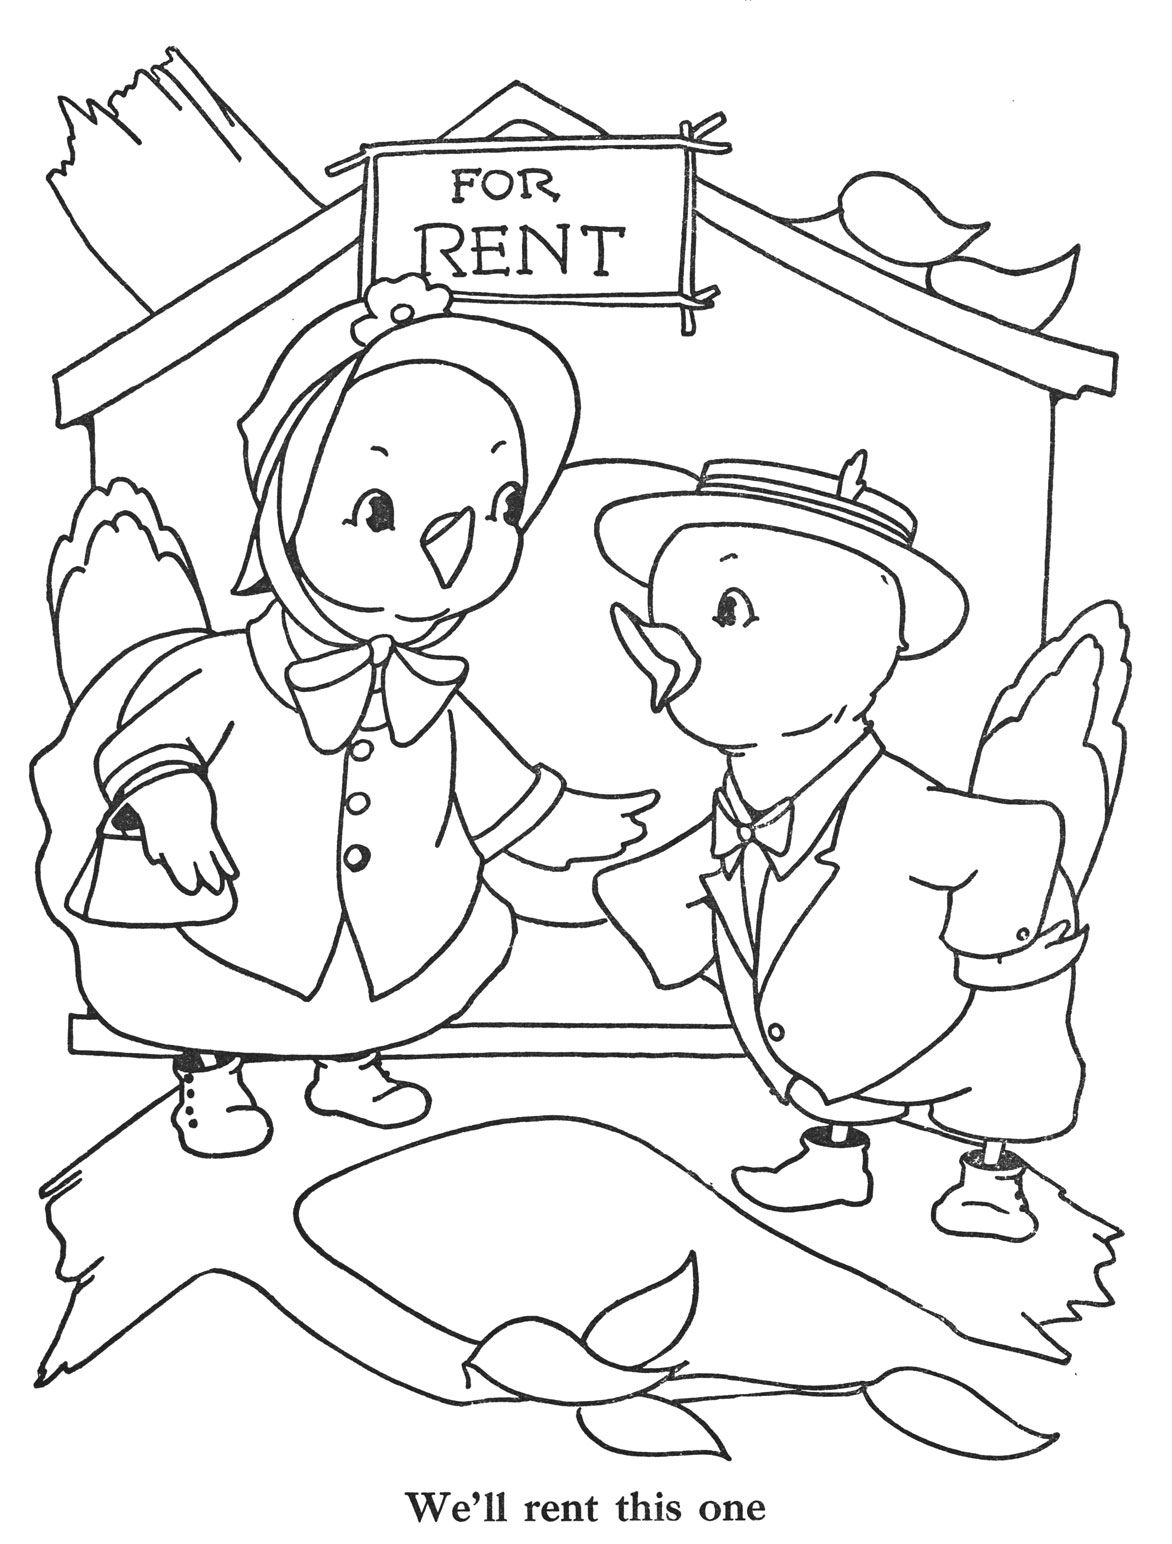 vintage coloring page - Google Search | Craft Patterns | Pinterest ...